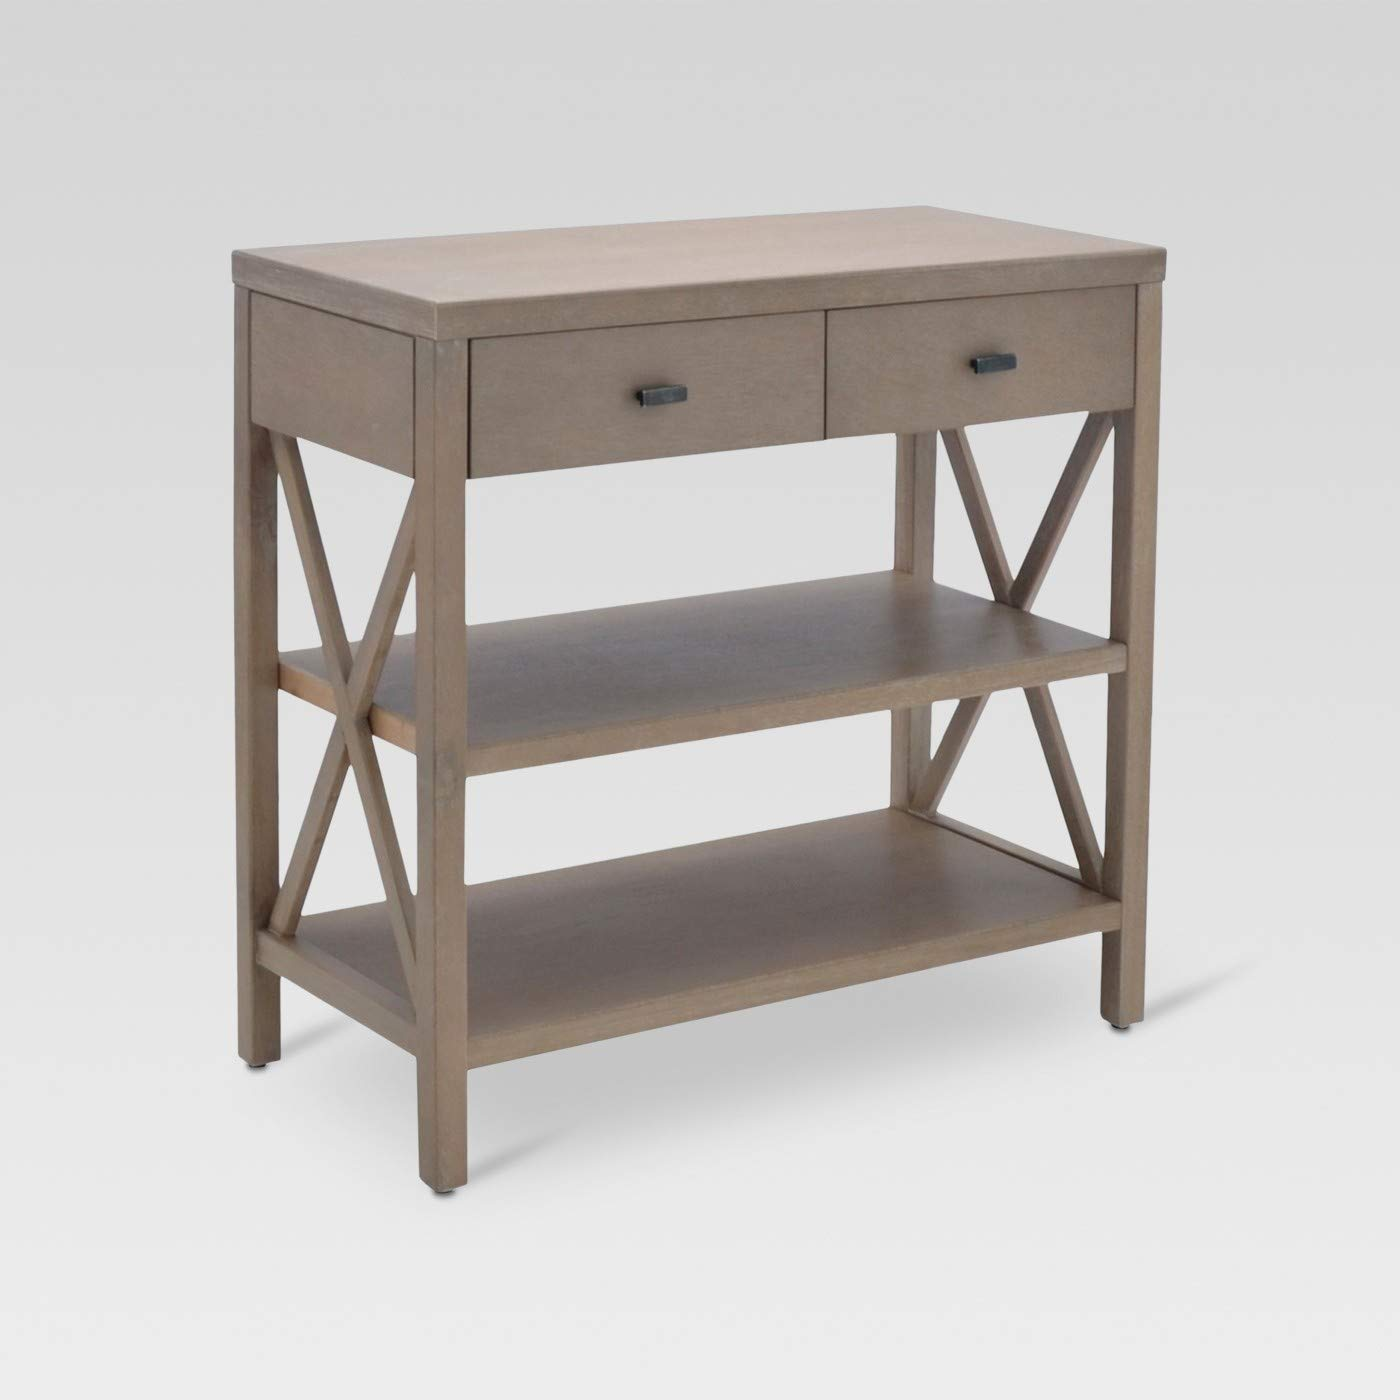 owings console table shelf with drawers threshold accent target kitchen dining slide under sofa room wing chairs kade gold night drum seat nautical floor lamps metal glass bedside